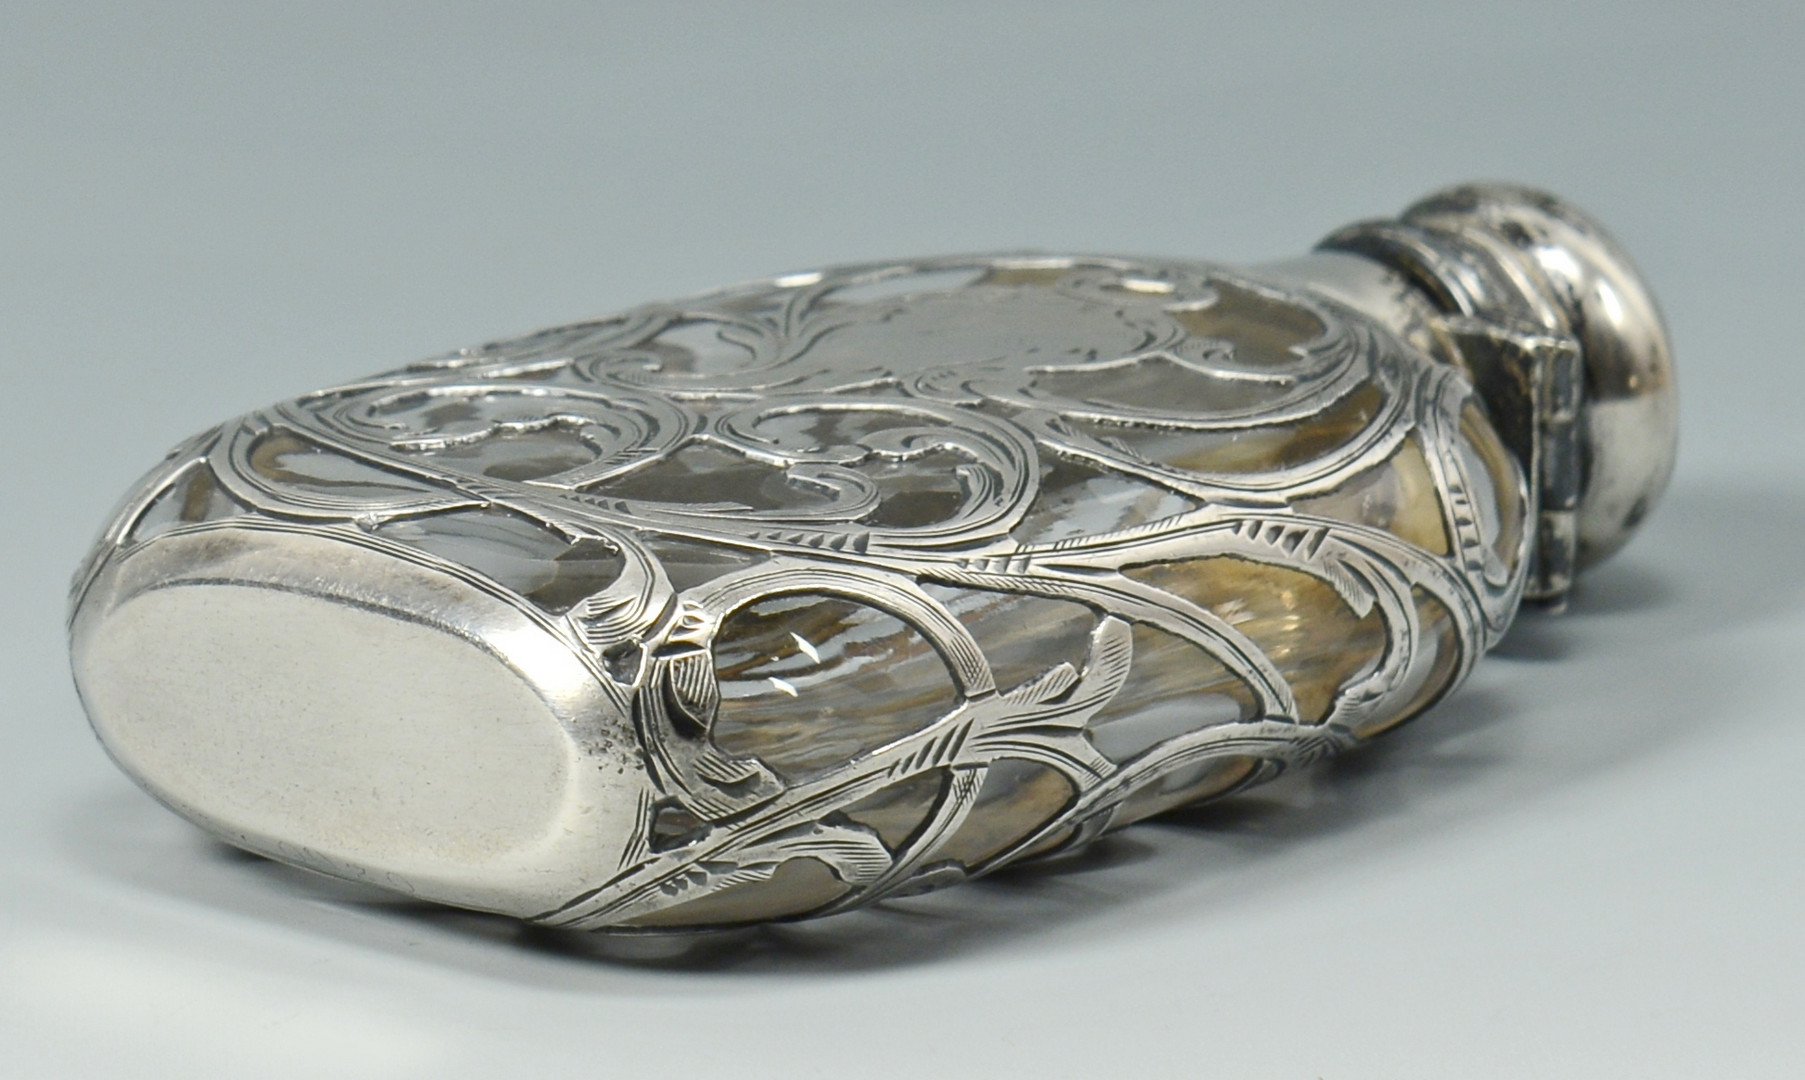 Lot 516: Reed & Barton Florentine Lace Sterling Flatware